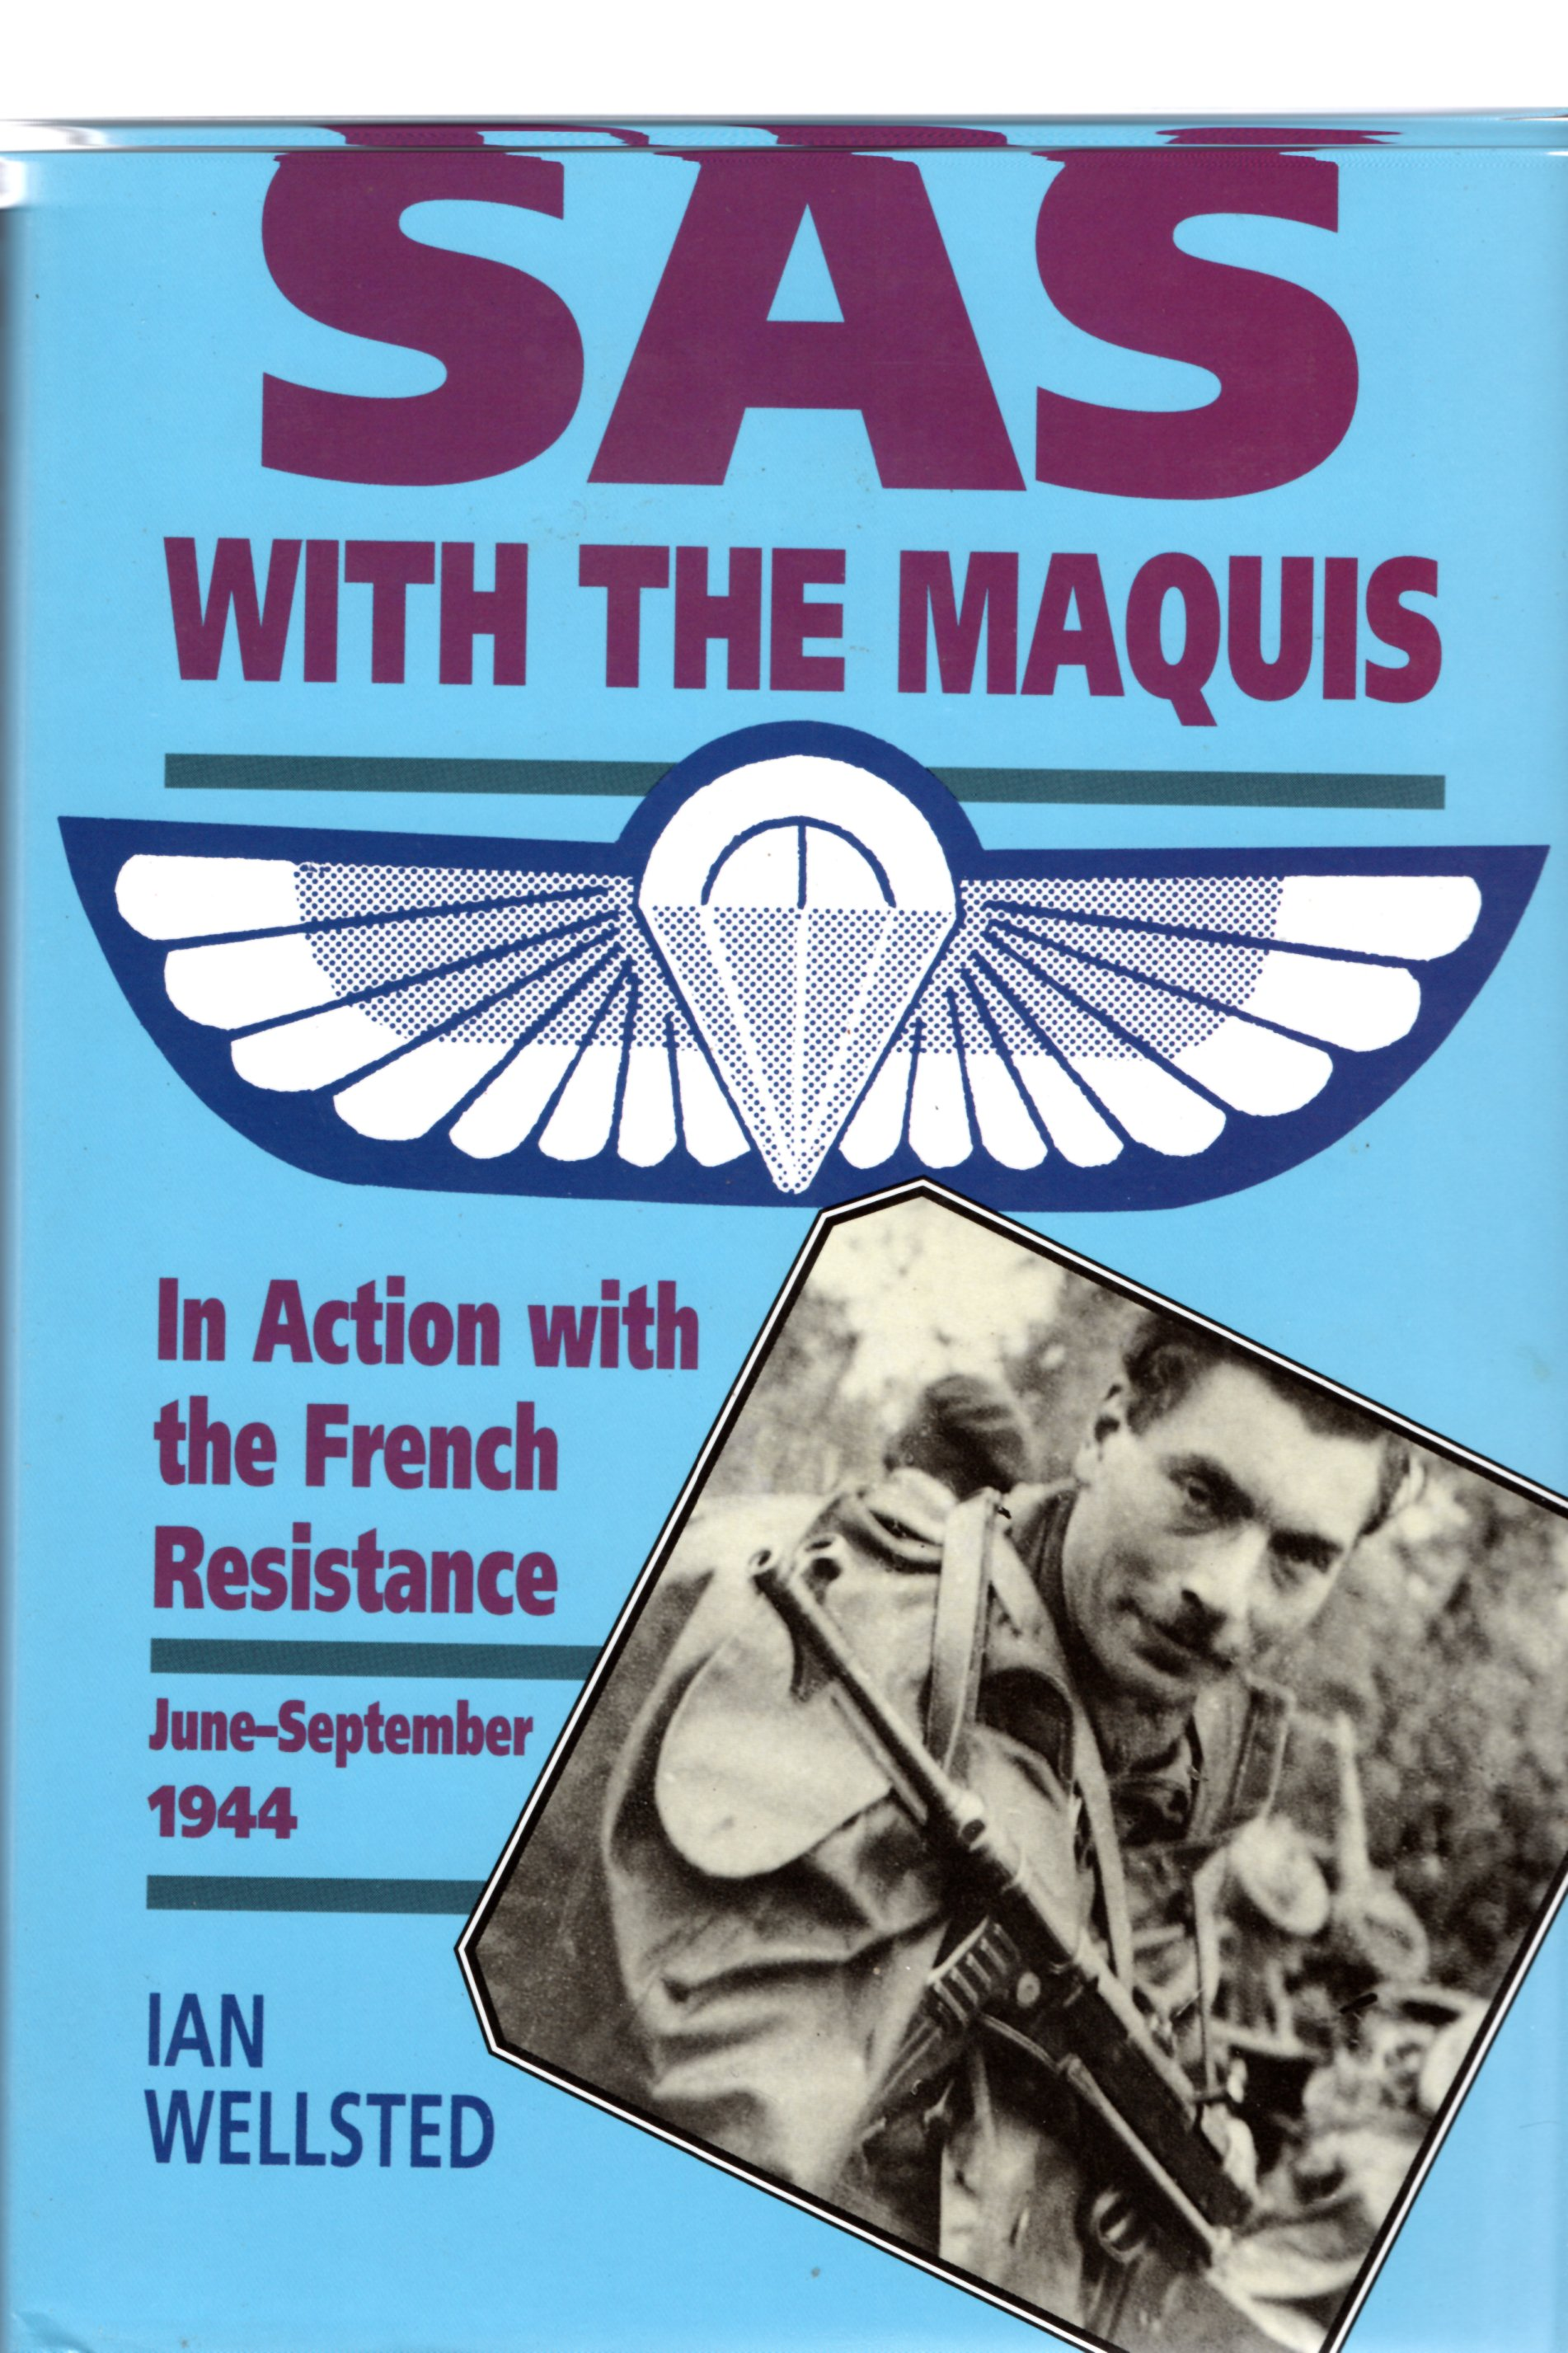 Image for SAS: With the Maquis - in Action With the French Resistance, June-Sept 1944: With the Maquis - In Action with the French Resistance, June-September 1944